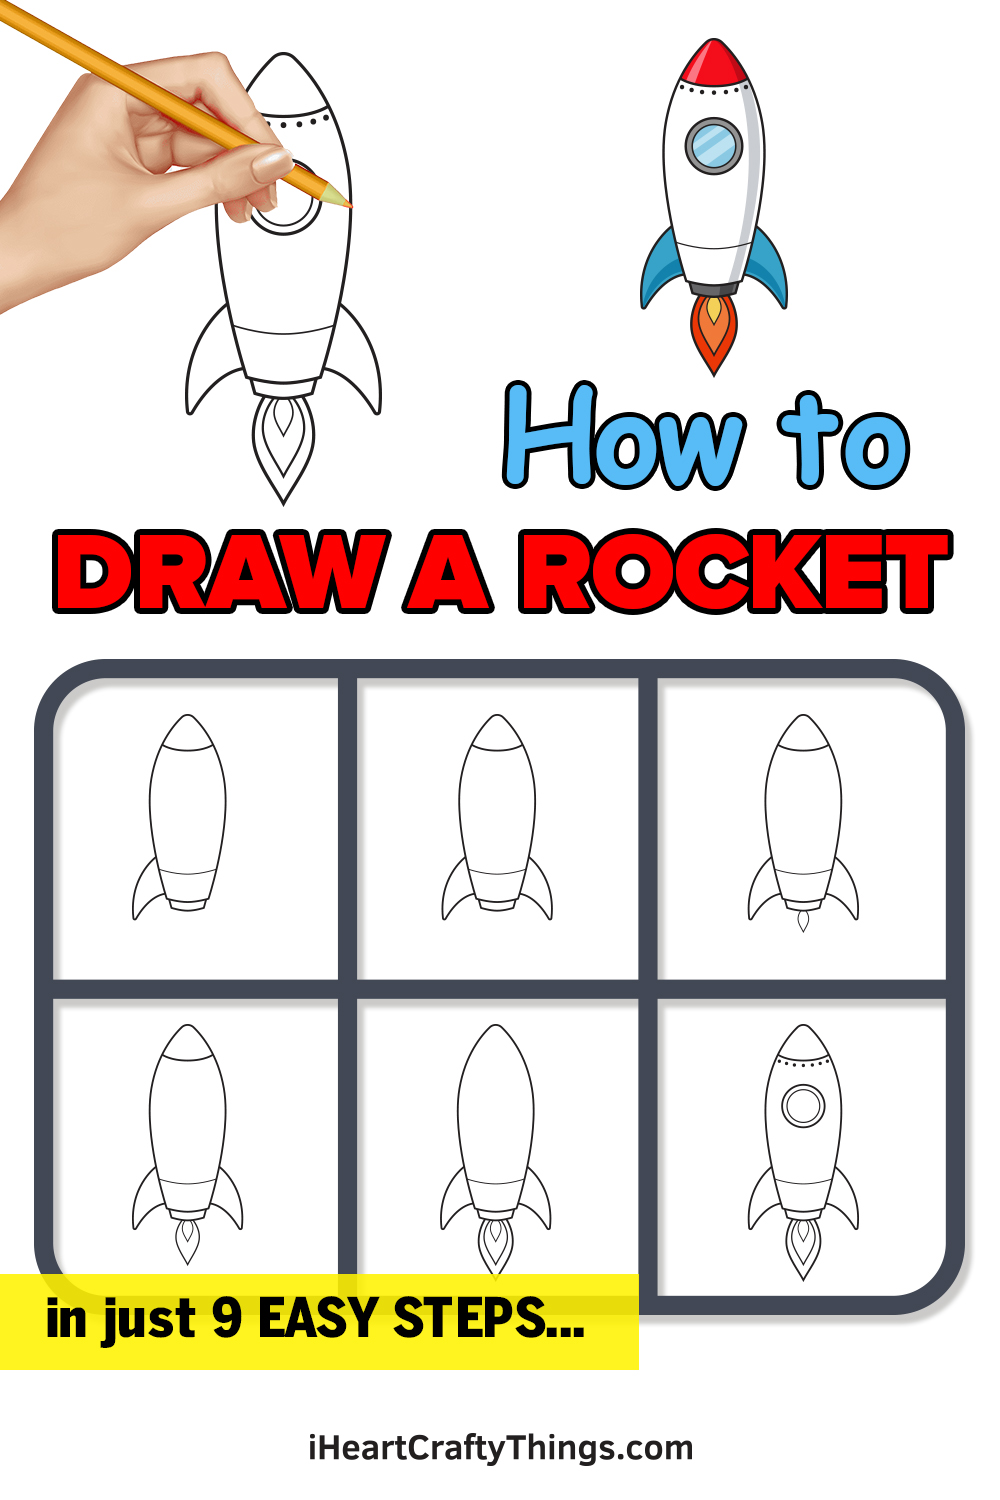 how to draw a rocket in just 9 easy steps